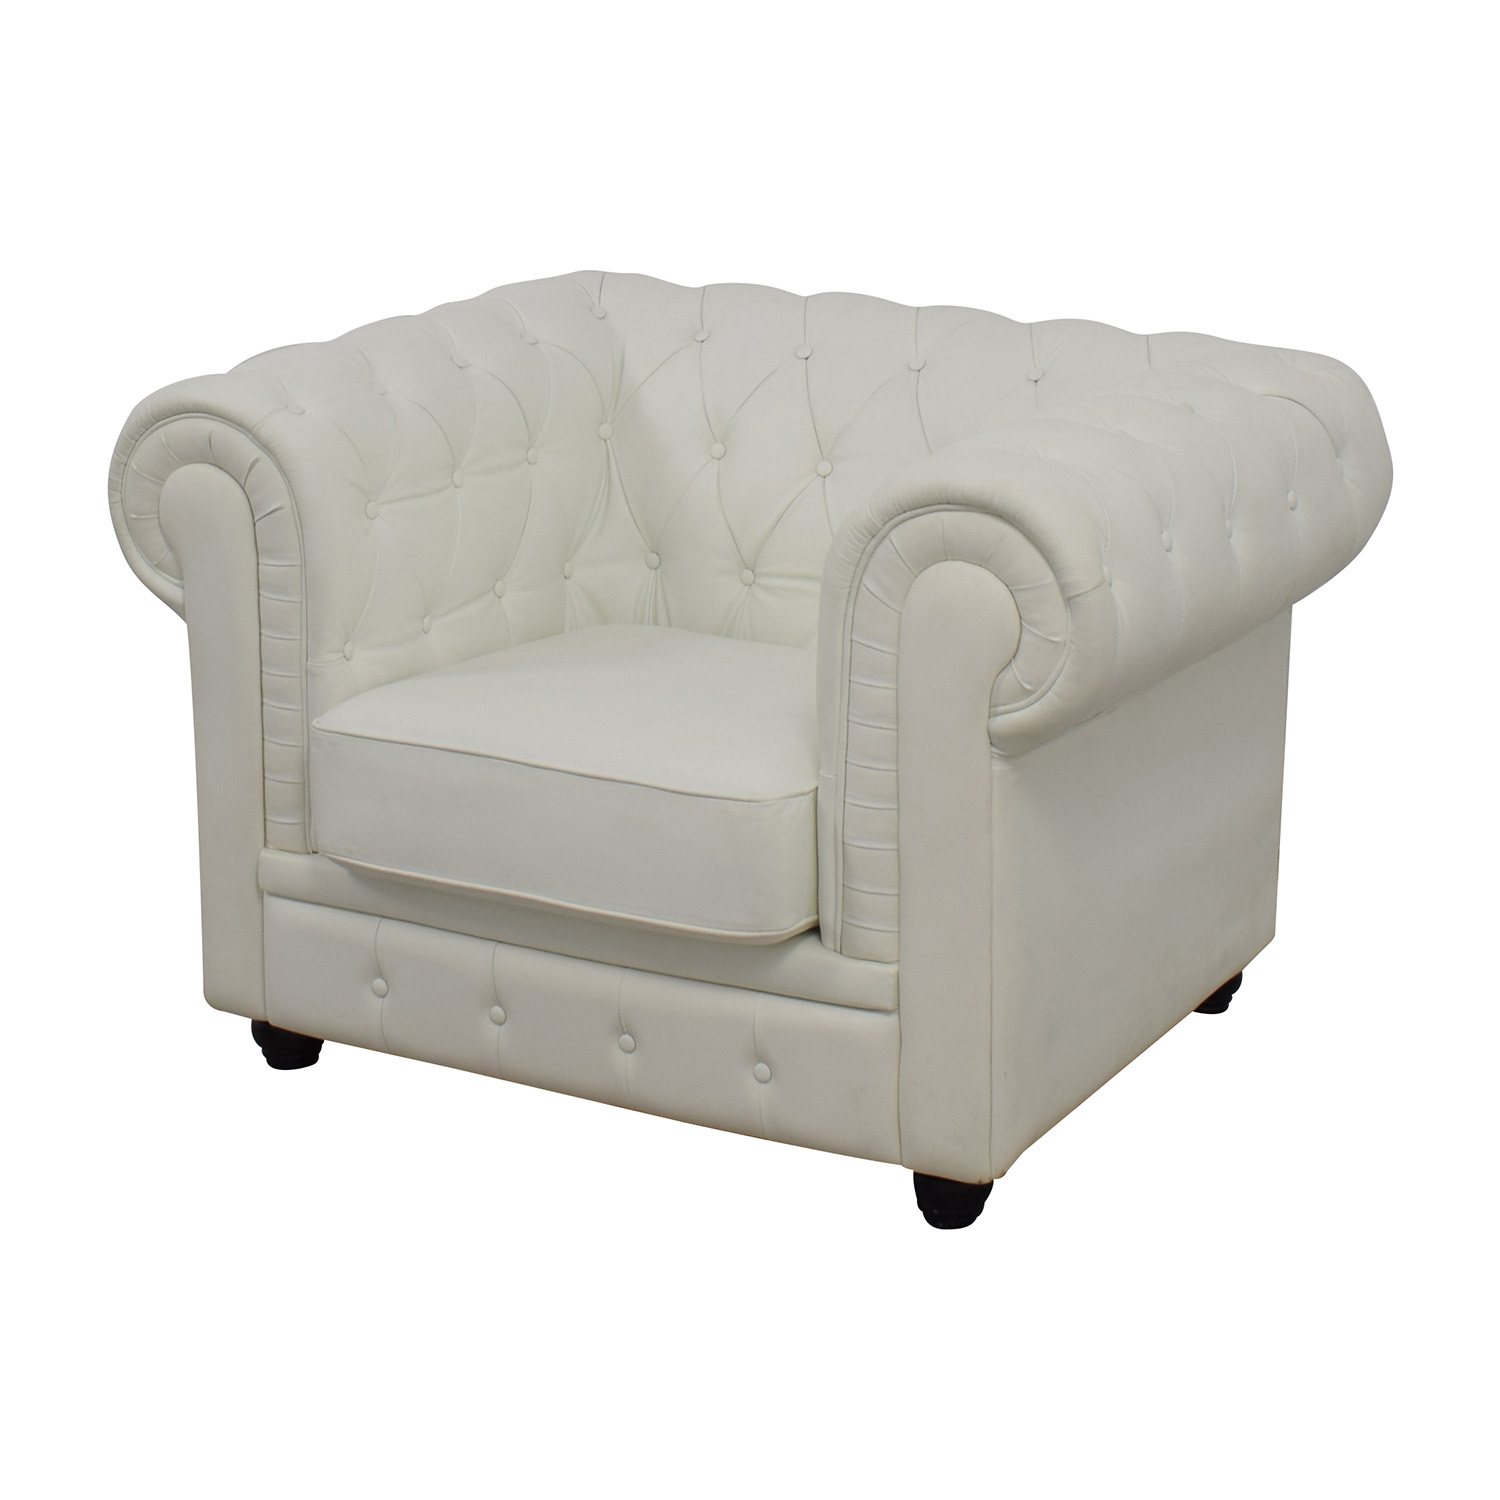 46% OFF Chesterfield Tufted White Leather Accent Chair Chairs